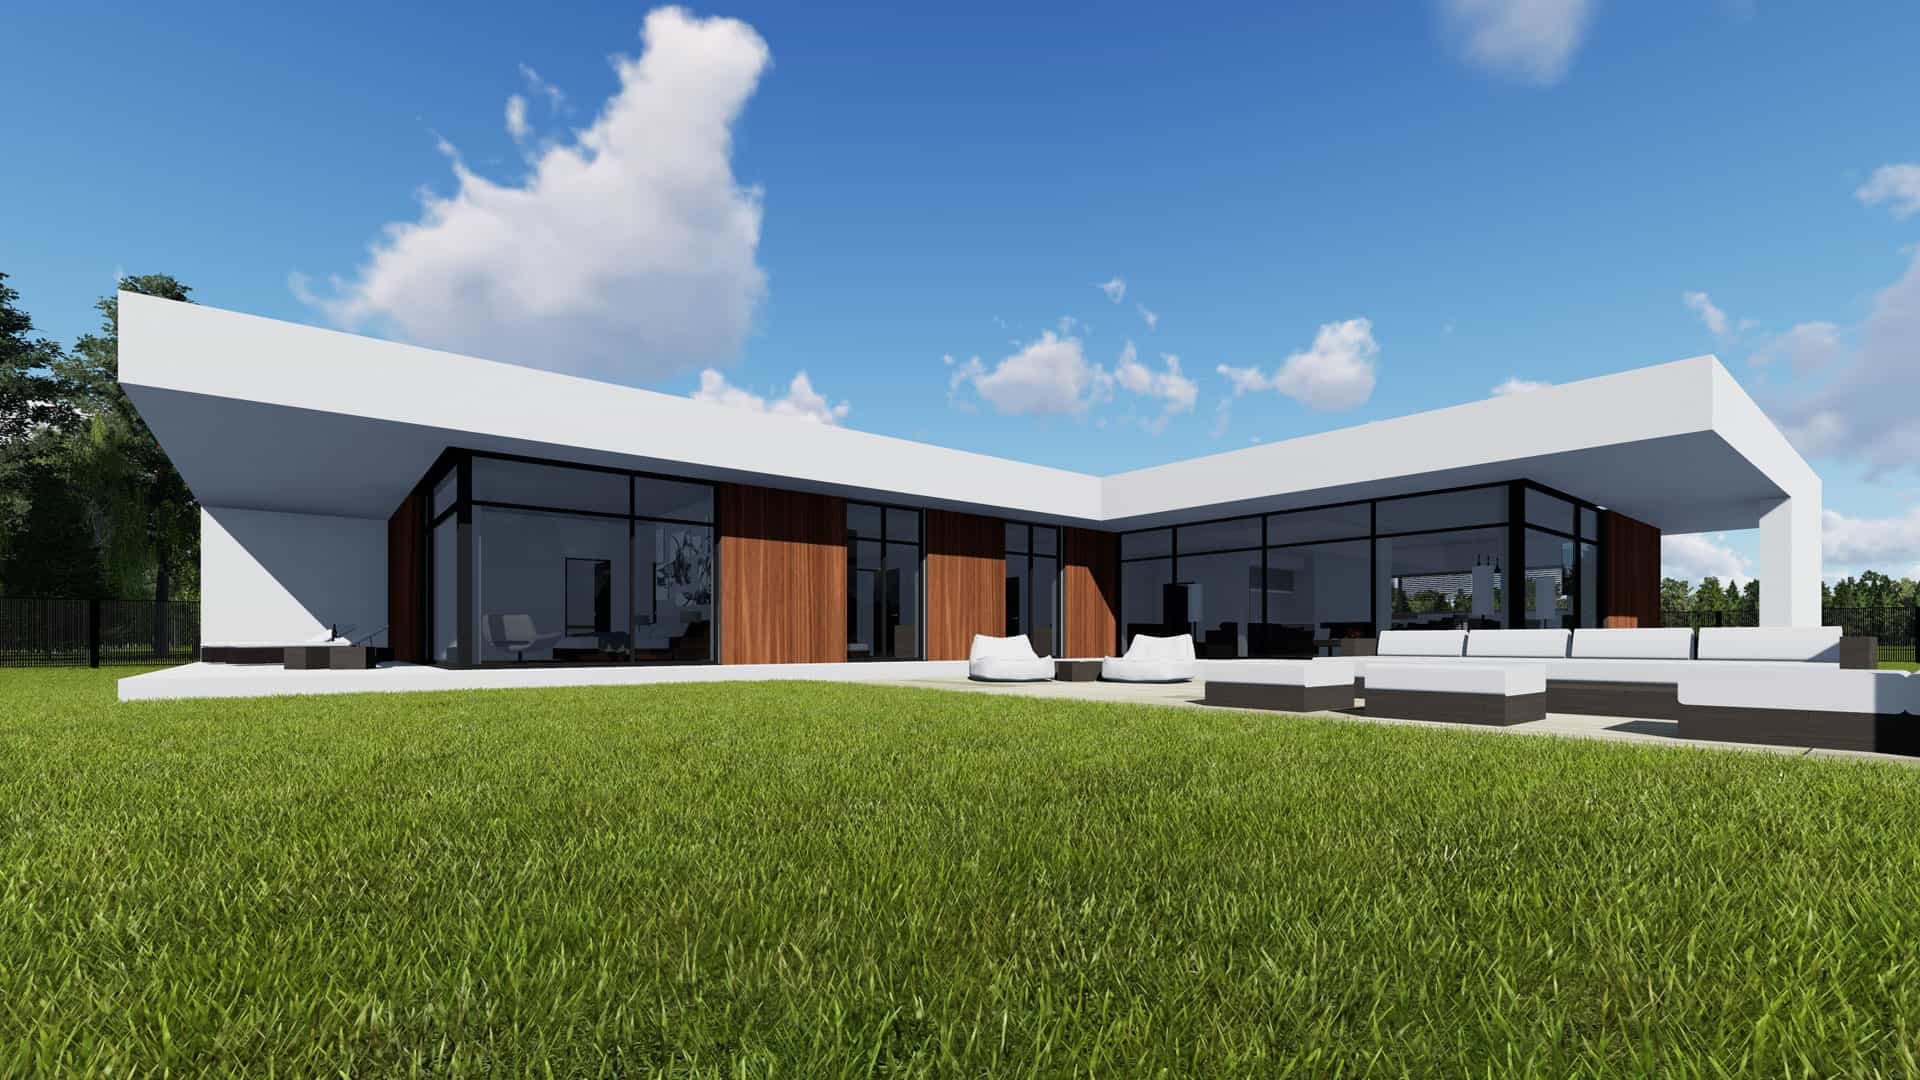 Modern Unexpected Concrete Flat Roof House Plans - Small ...